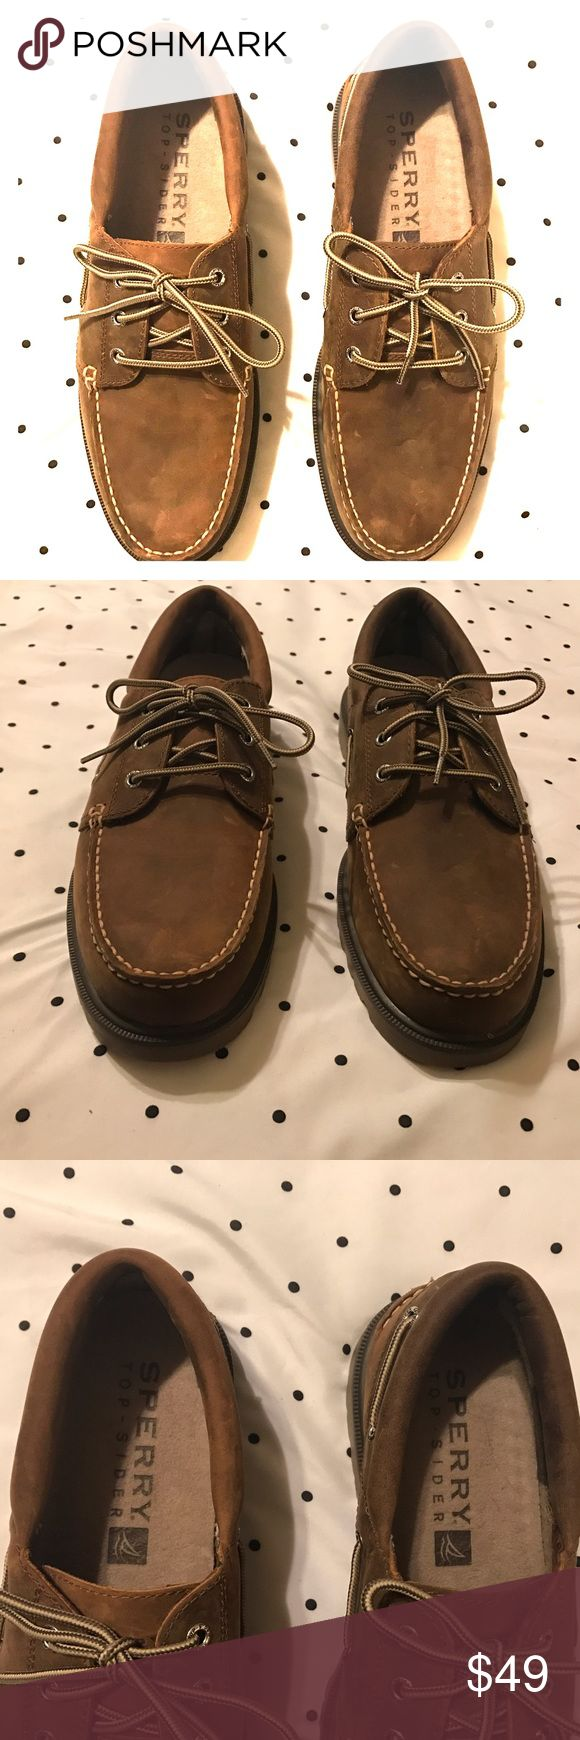 Sperry Top-Sider Dark Brown Leather Boat Shoes Sperry Top-Sider  Dark brown leather boat shoes  Men's size 10.5M  Waterproof  Leather upper   Excellent like new condition. Sperry Top-Sider Shoes Boat Shoes